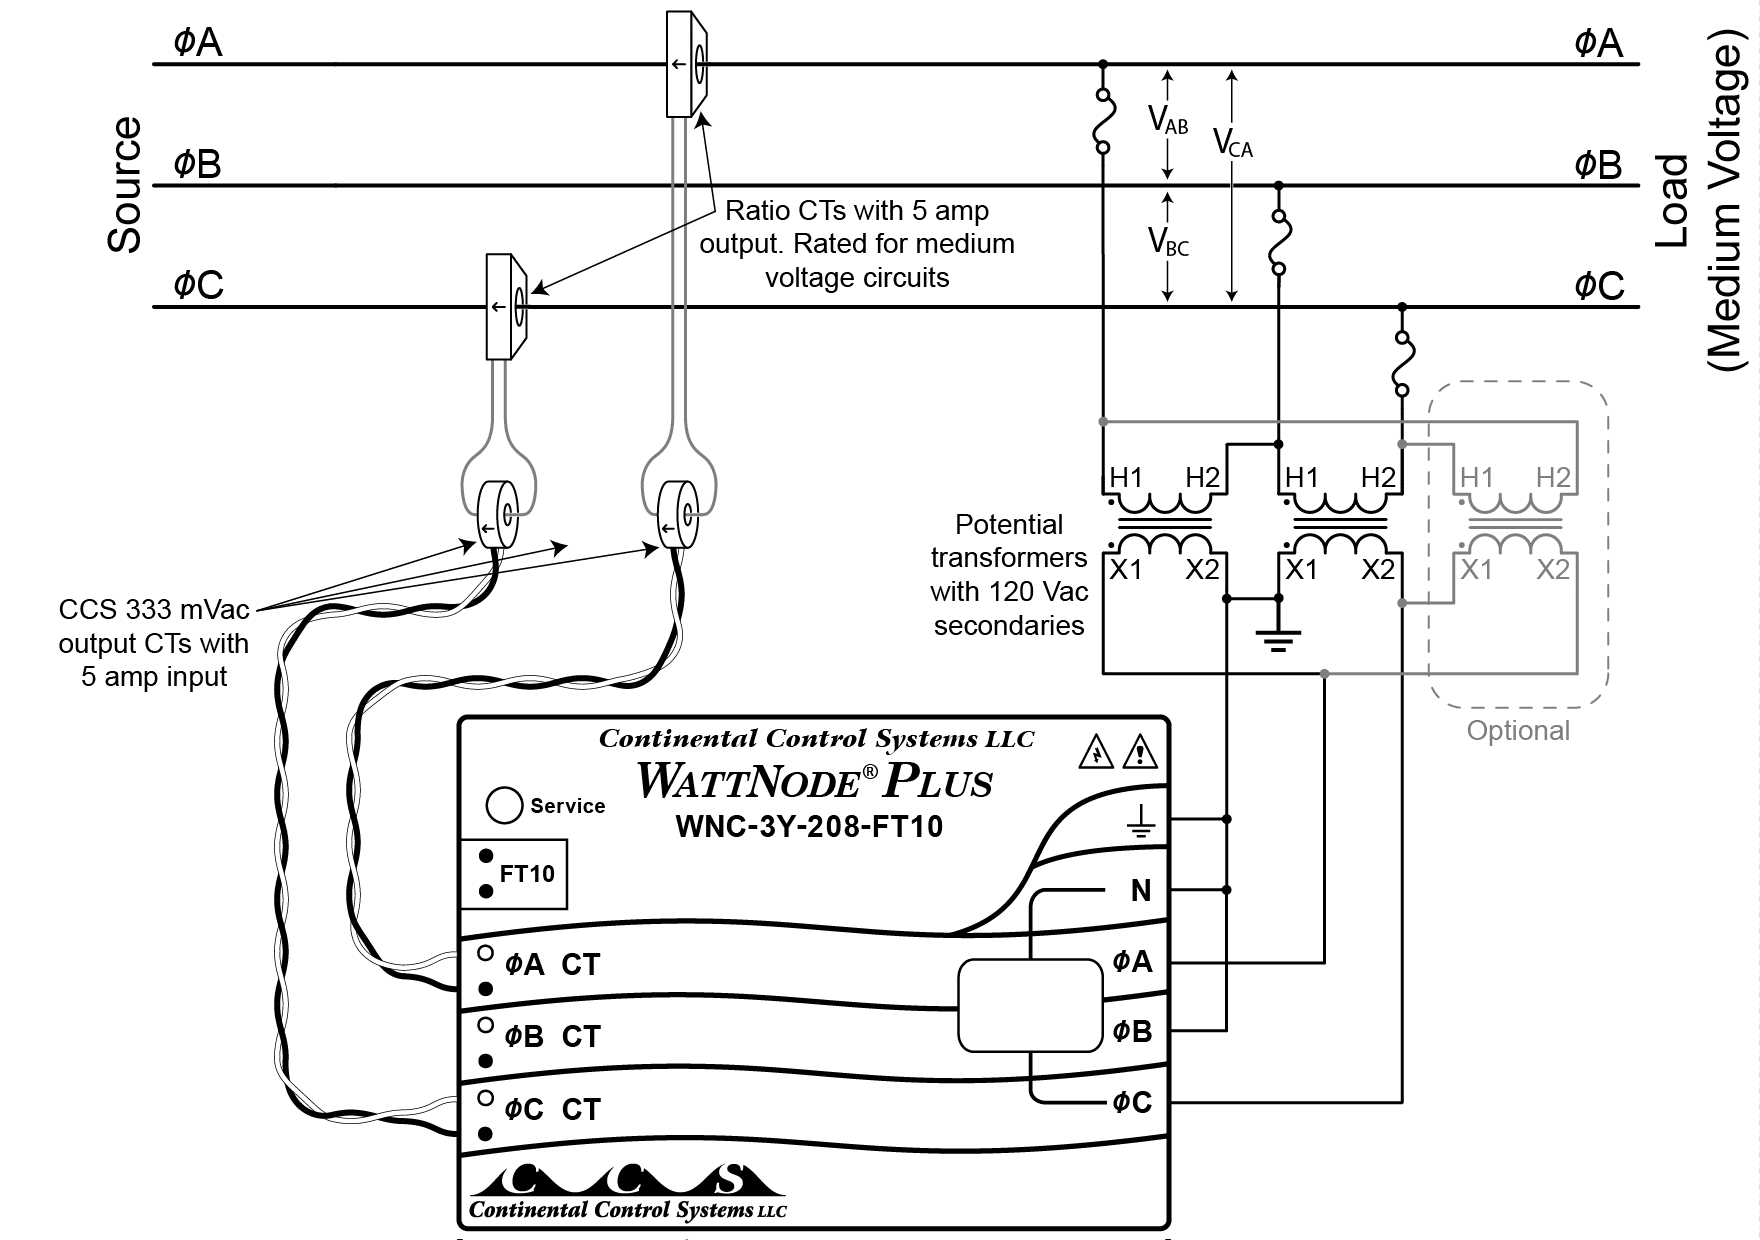 Hammond Delta Wye Transformer Wiring Diagrams on 3 phase delta wiring diagram, sanitary tee installation diagram, 480 delta wiring diagram, step-up transformer delta-wye transformer diagram, wye-delta wiring power of legs, high delta transformer primary diagram, grounded delta transformer diagram, phasor diagram, wye-delta motor control diagram, zig zag transformer diagram, delta to delta wiring diagram, delta connection diagram, wye delta starter diagram, 240v open delta transformer diagram, delta motor wiring diagram, wye-delta starter connections, corner grounded delta diagram, autotransformer starter wiring diagram, delta and wye diagram, y grounded system diagram,